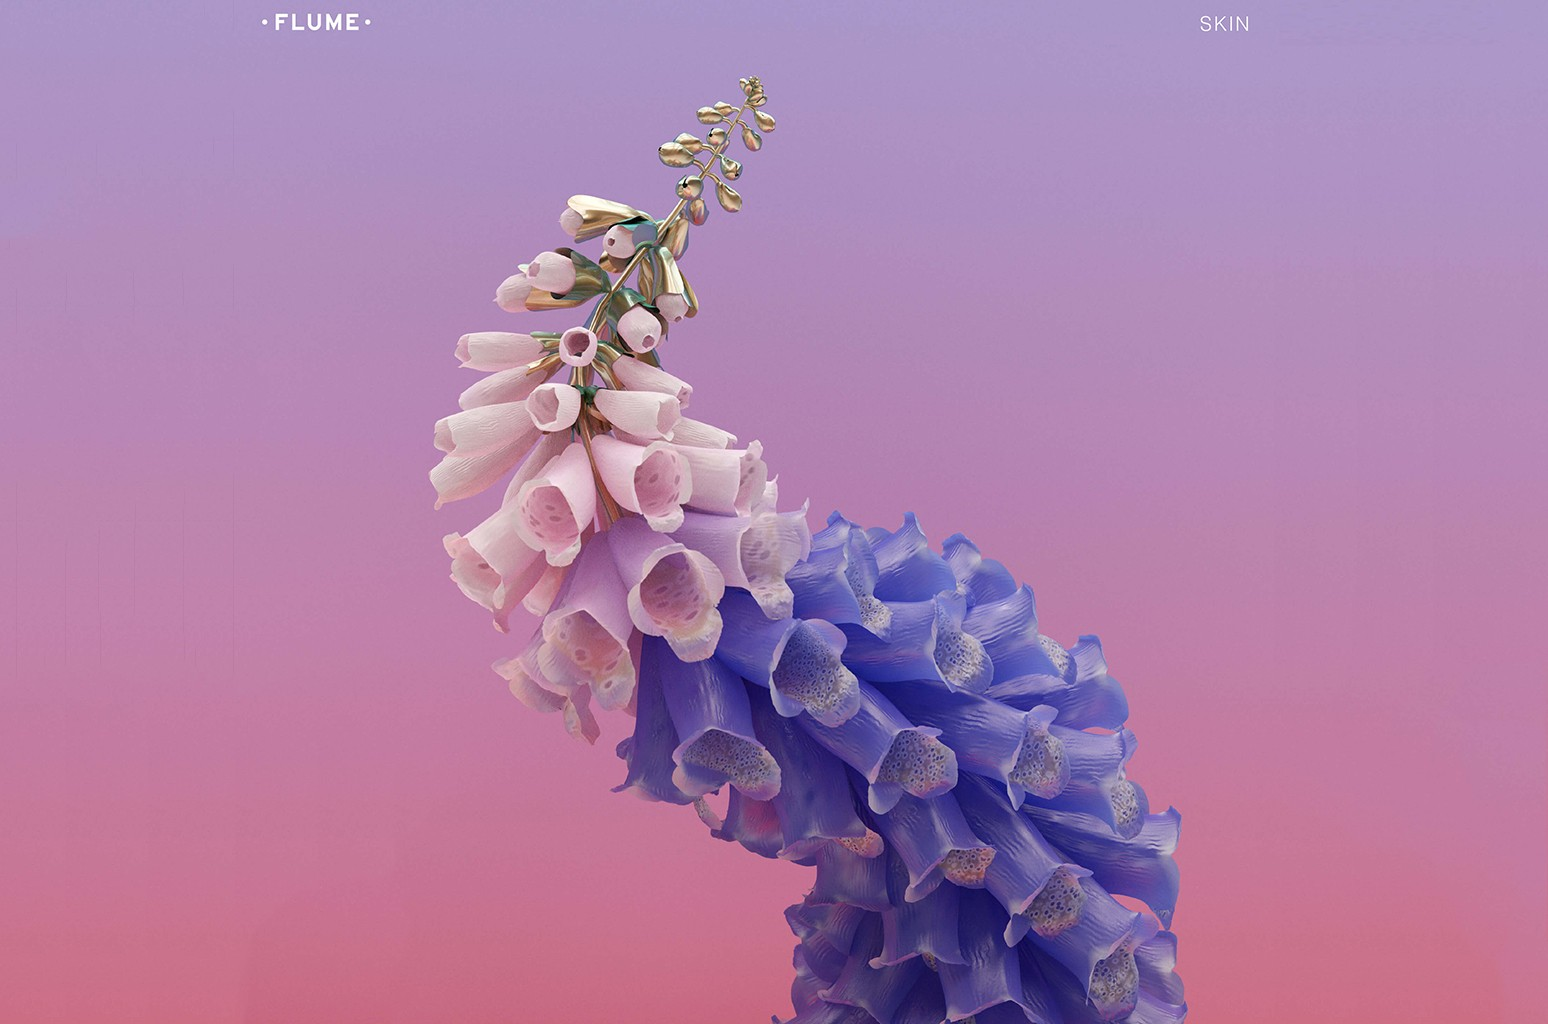 """Cover art for """"Skin"""" by Flume."""